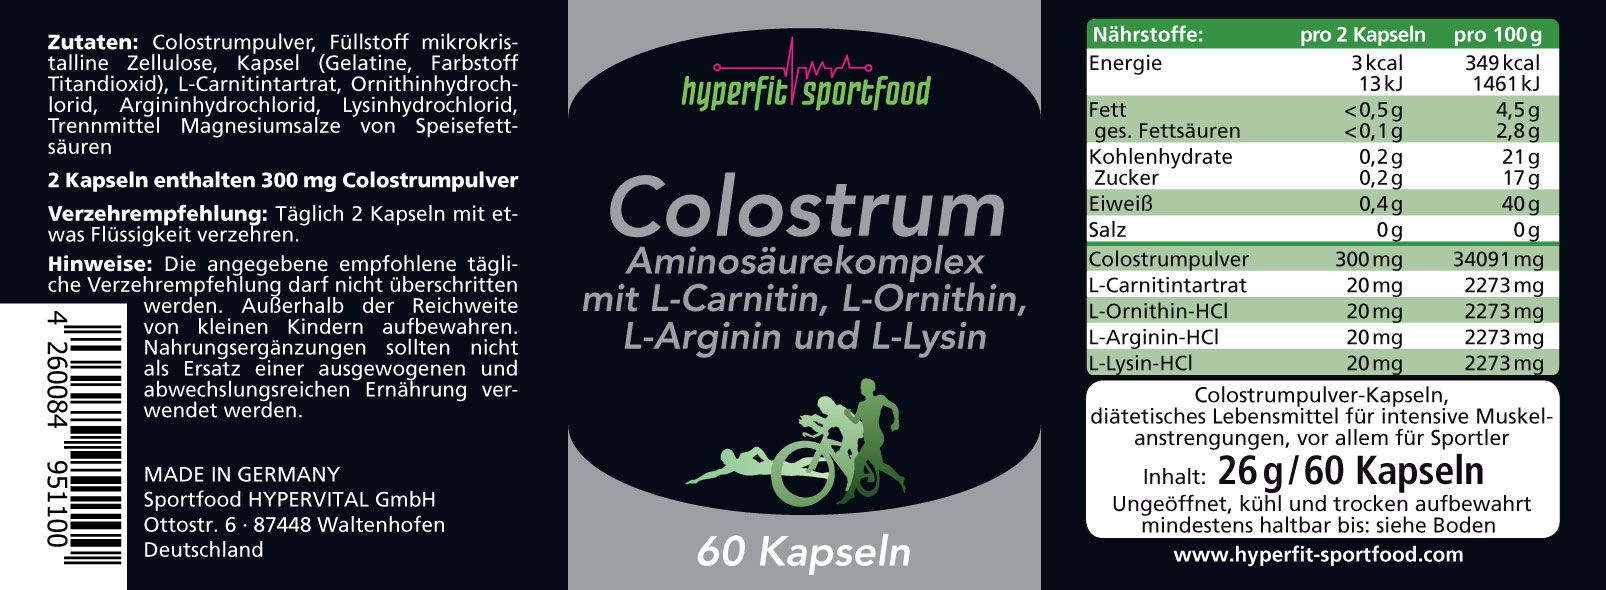 Colostrum-Info